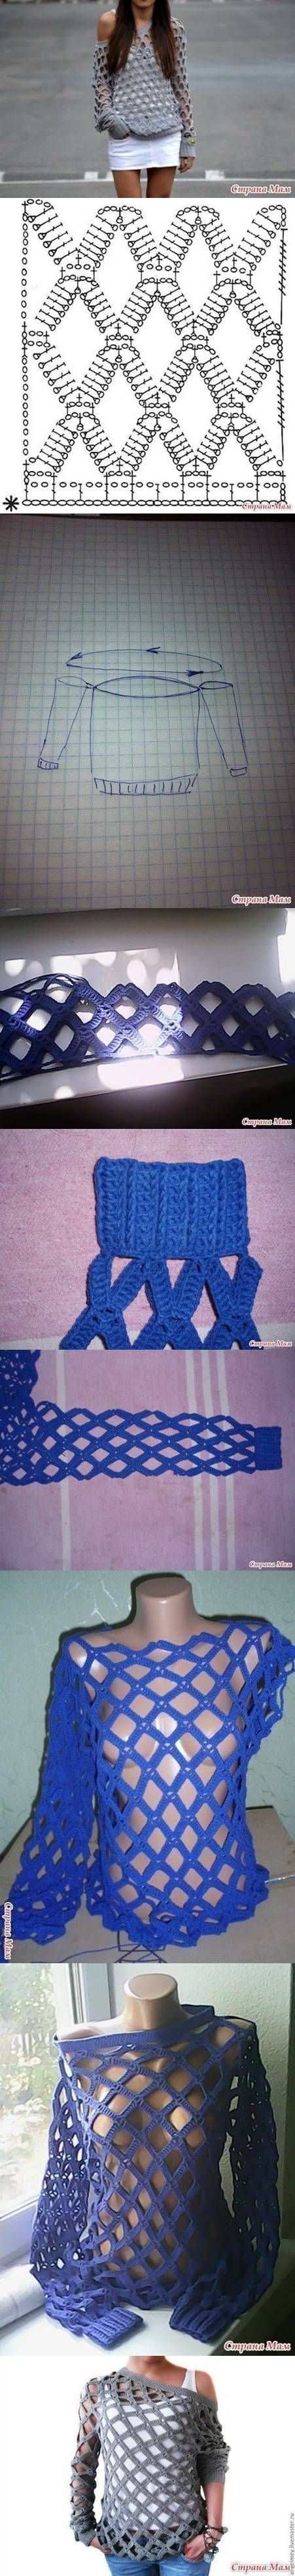 DIY Crochet Blouse  ♪ ♪ ... #inspiration #crochet  #knit #diy GB  http://www.pinterest.com/gigibrazil/boards/